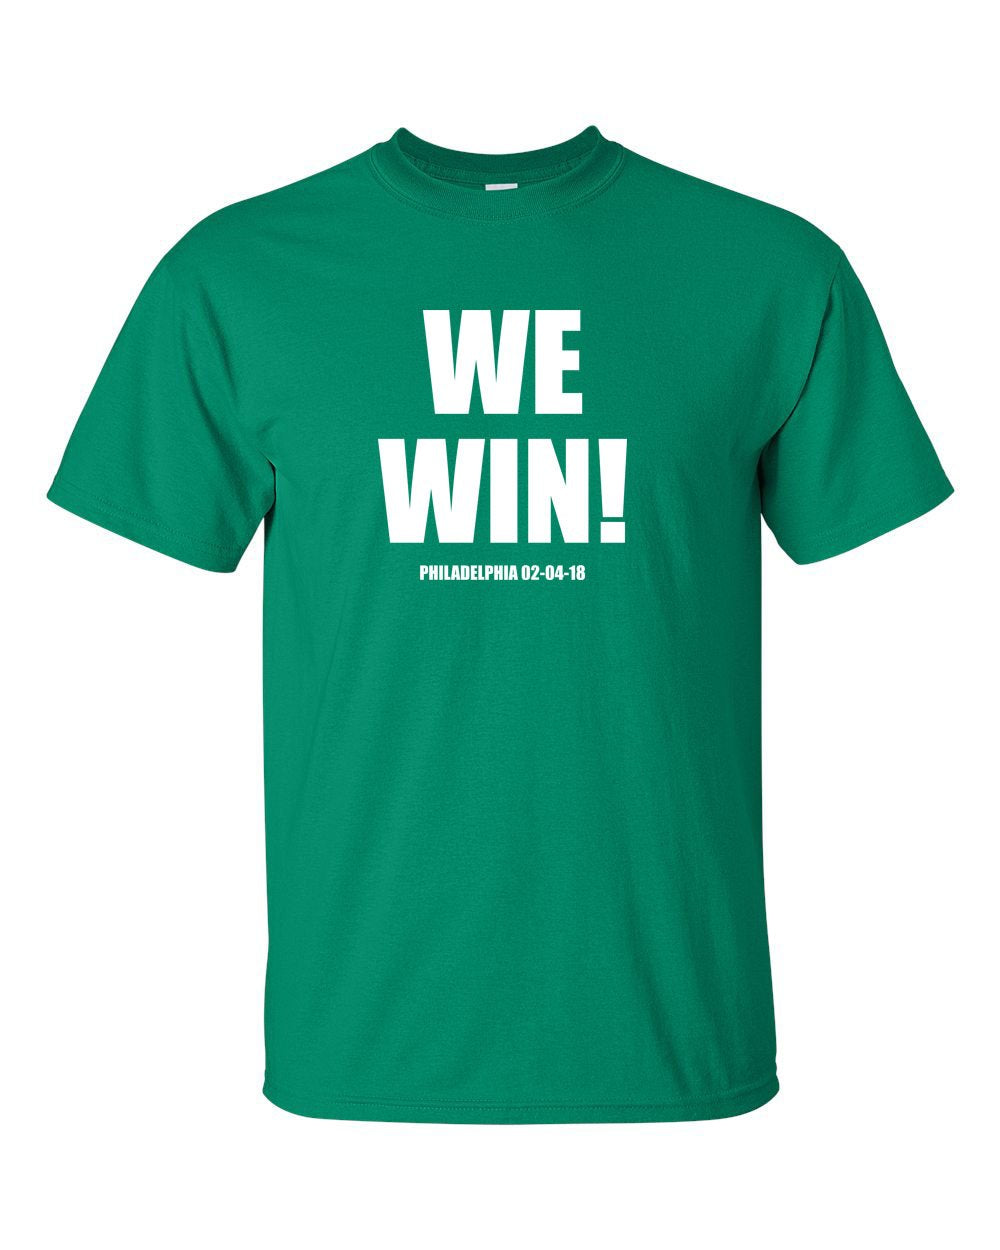 We Win! Mens/Unisex T-Shirt